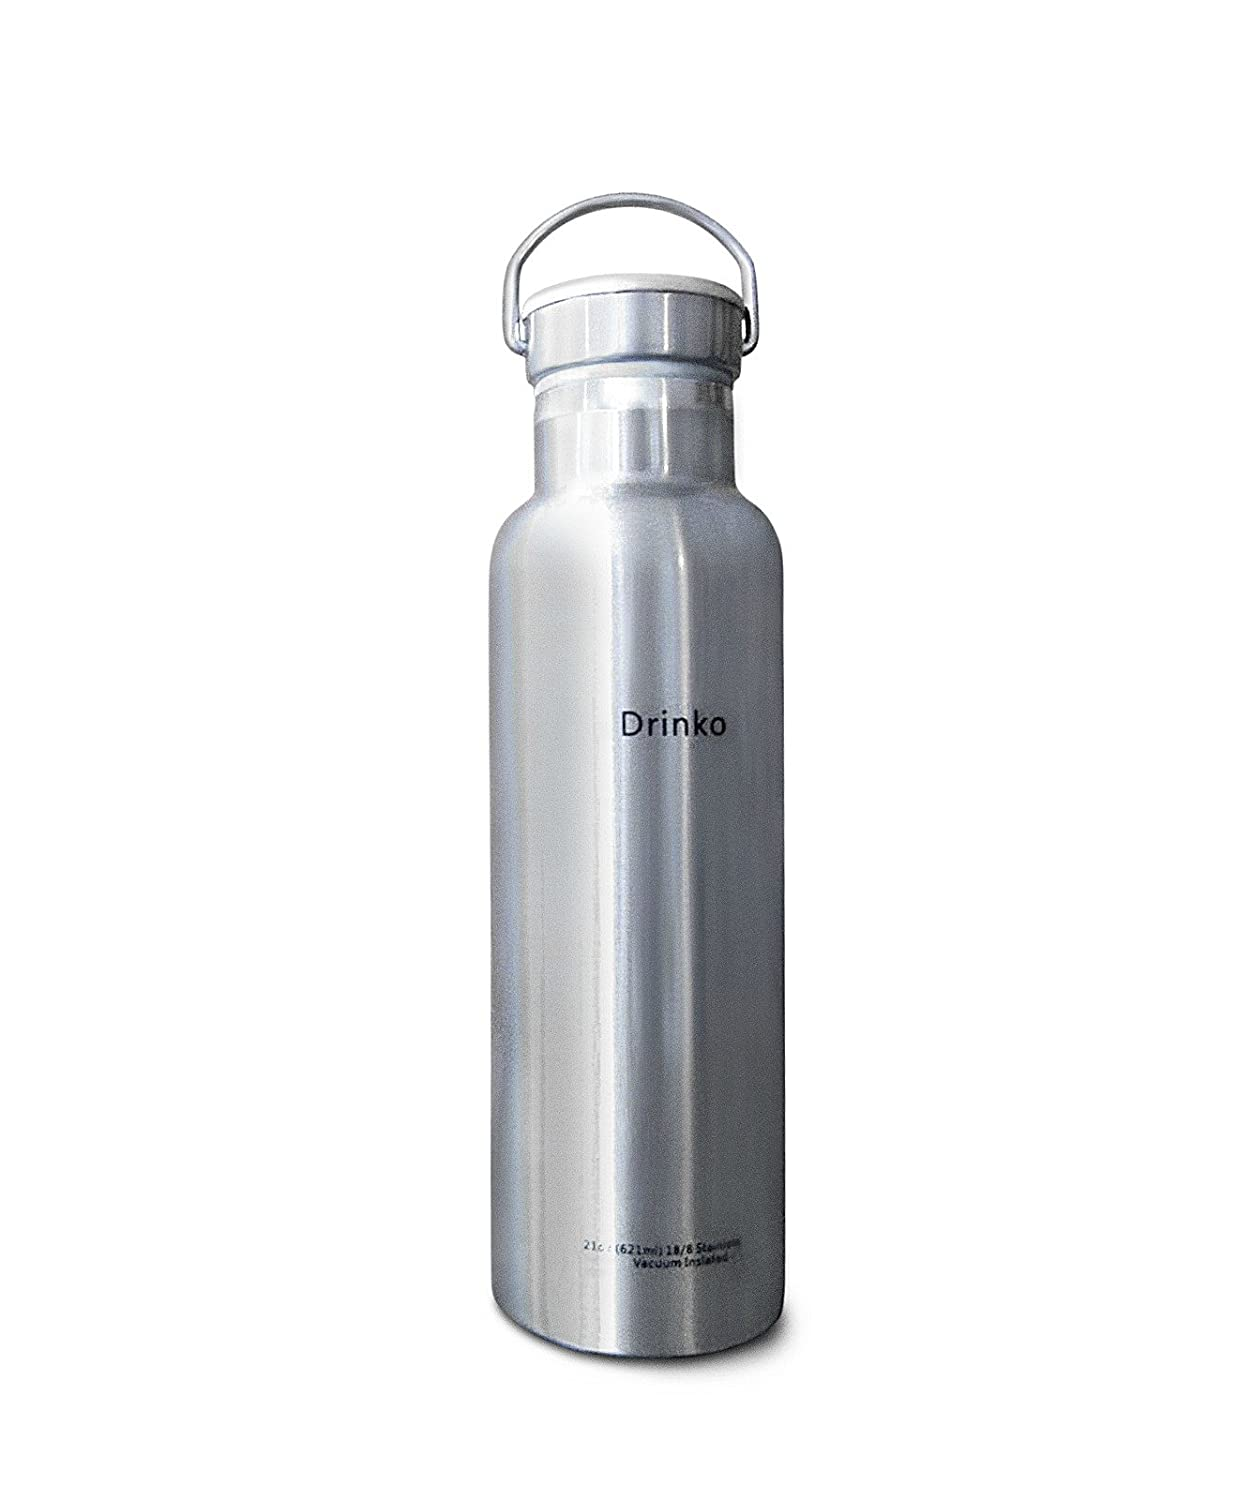 Eco-friendly Insulated 21 oz Stainless Steel Water Bottle by Drinko